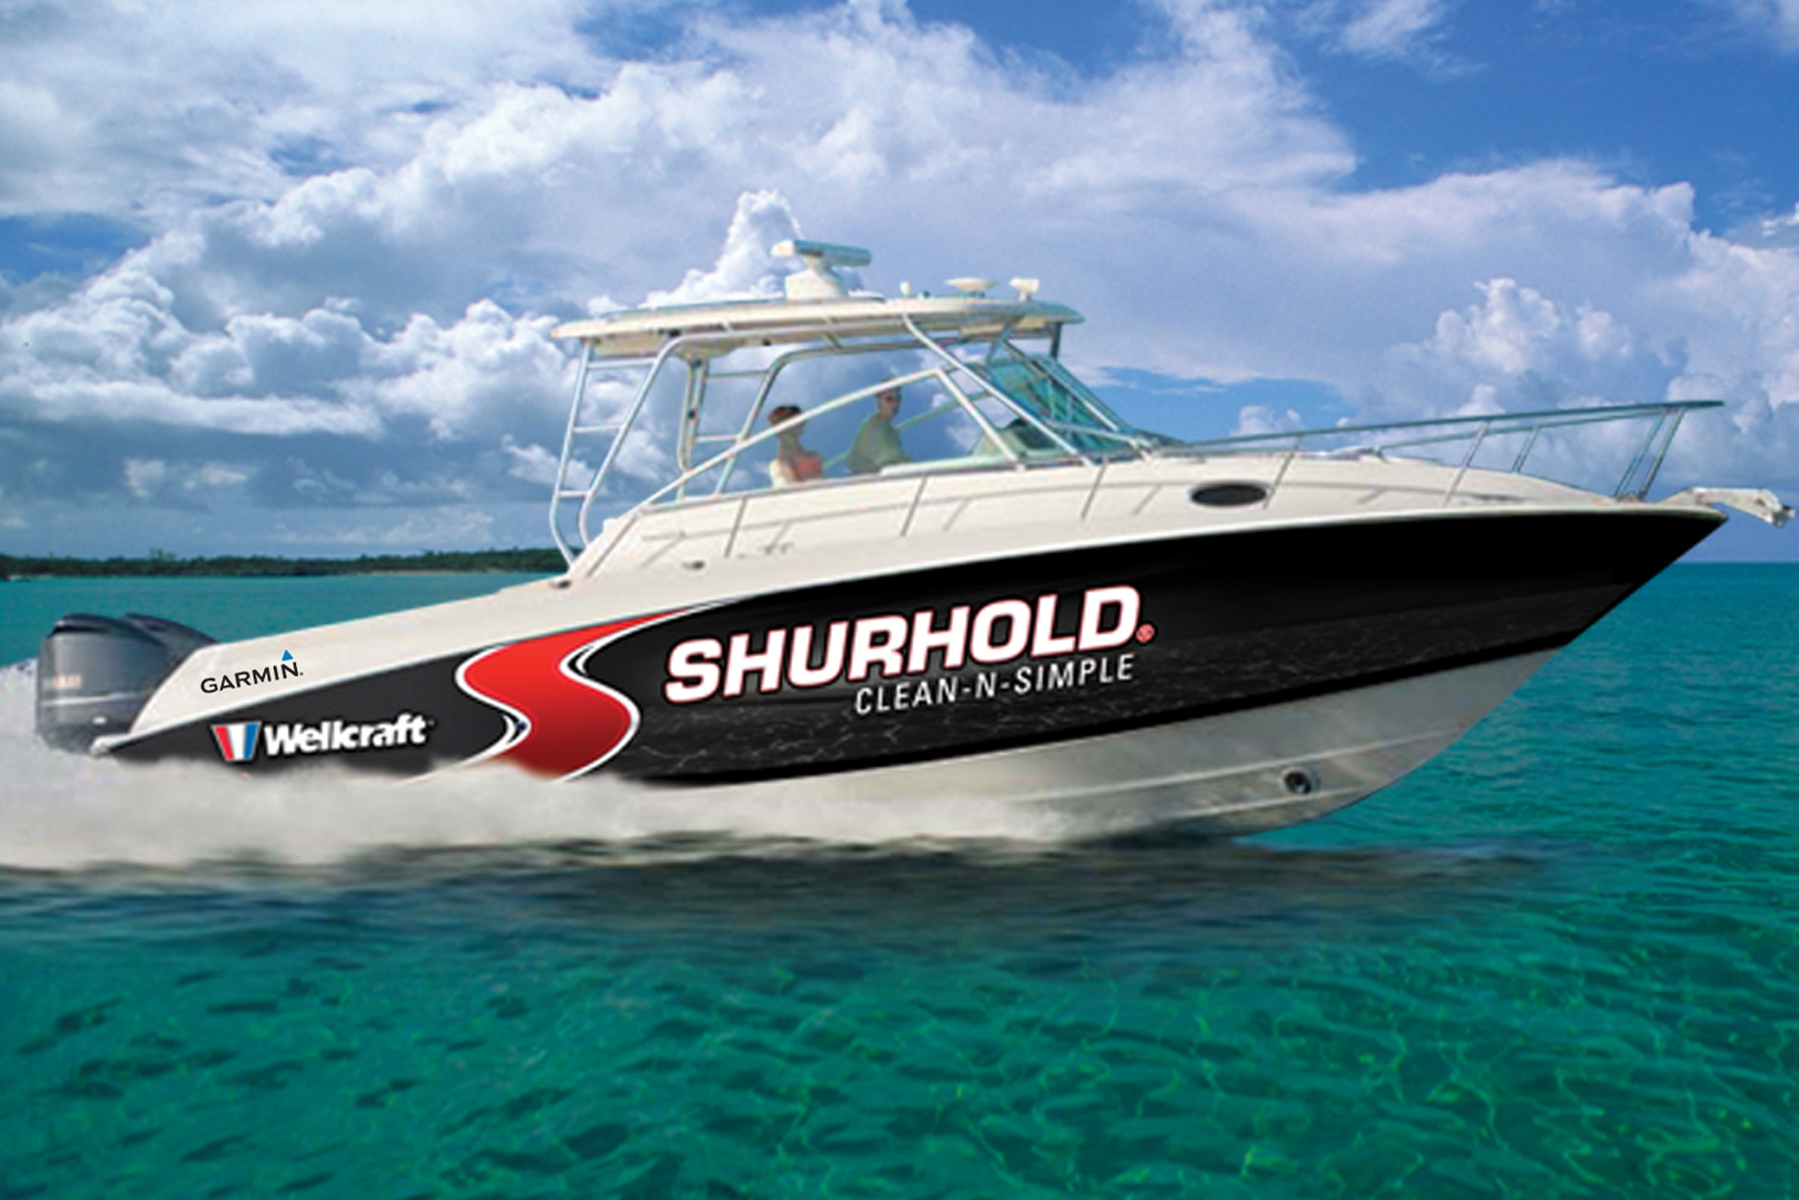 ... performed on Shurhold's new Wellcraft 340 Coastal called Clean-N-Simple.